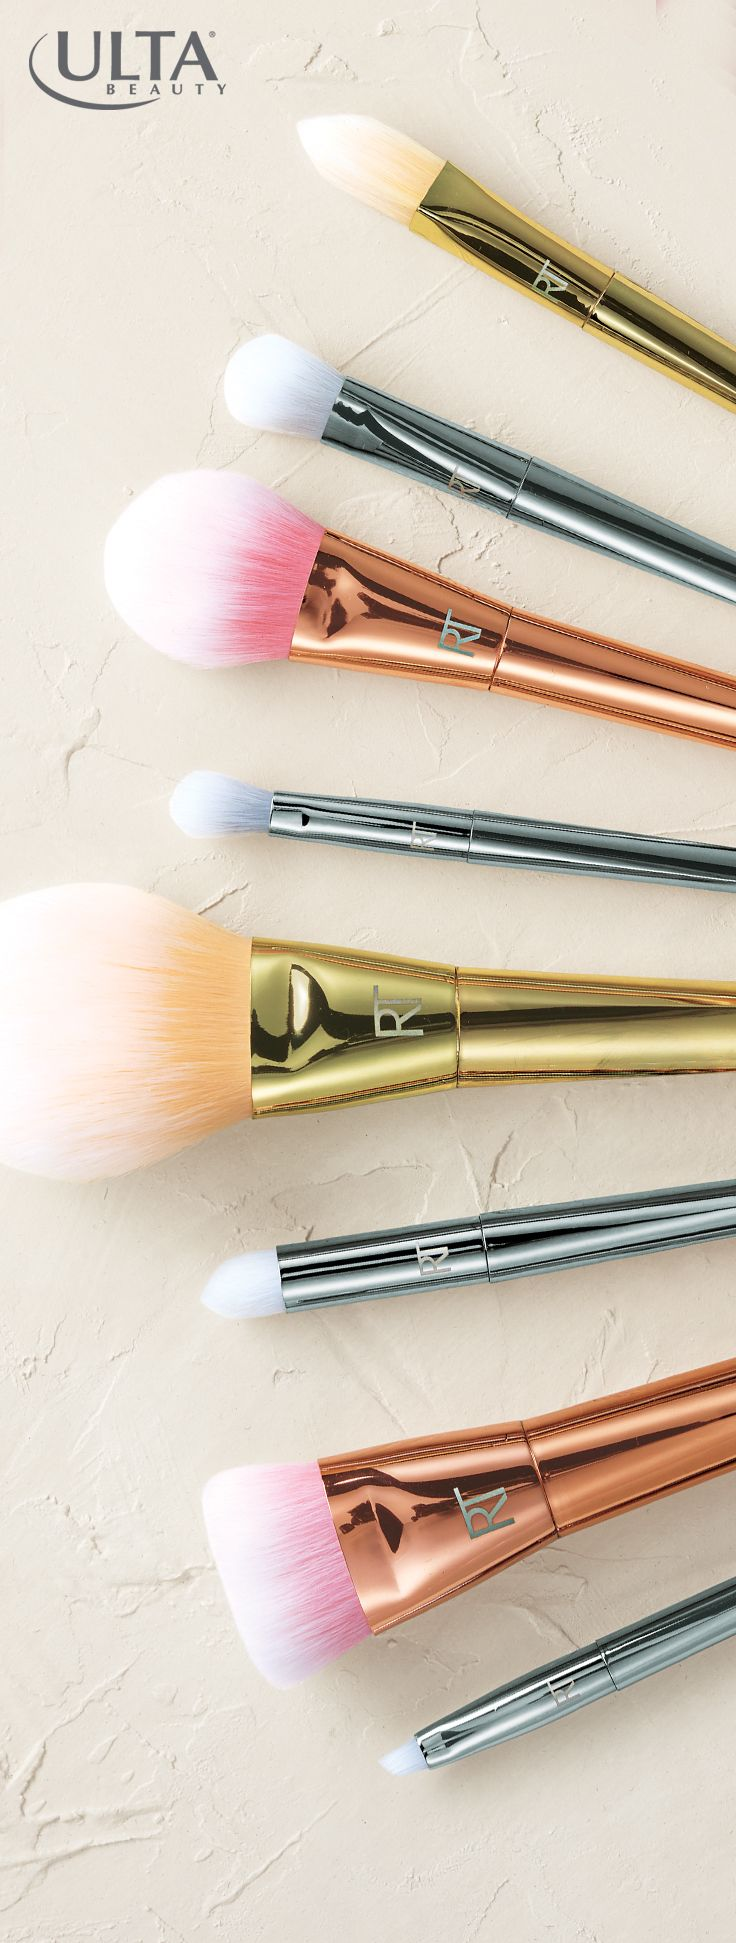 How pretty are these metallic makeup brushes? Putting on makeup gets glam with t...